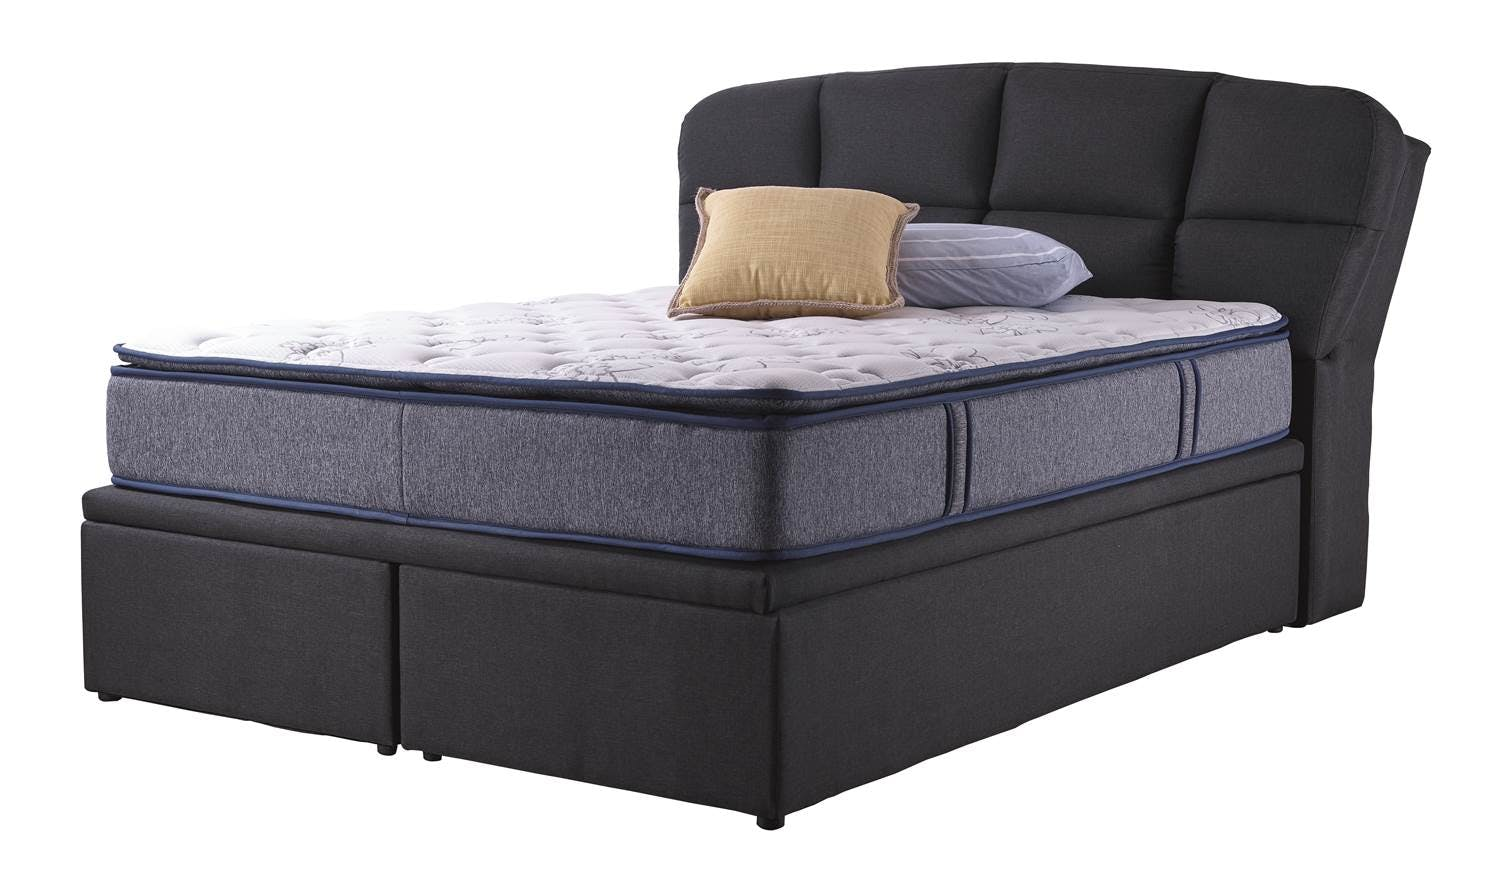 dortmund queen size storage bed frame colour black stone also available in king size. Black Bedroom Furniture Sets. Home Design Ideas